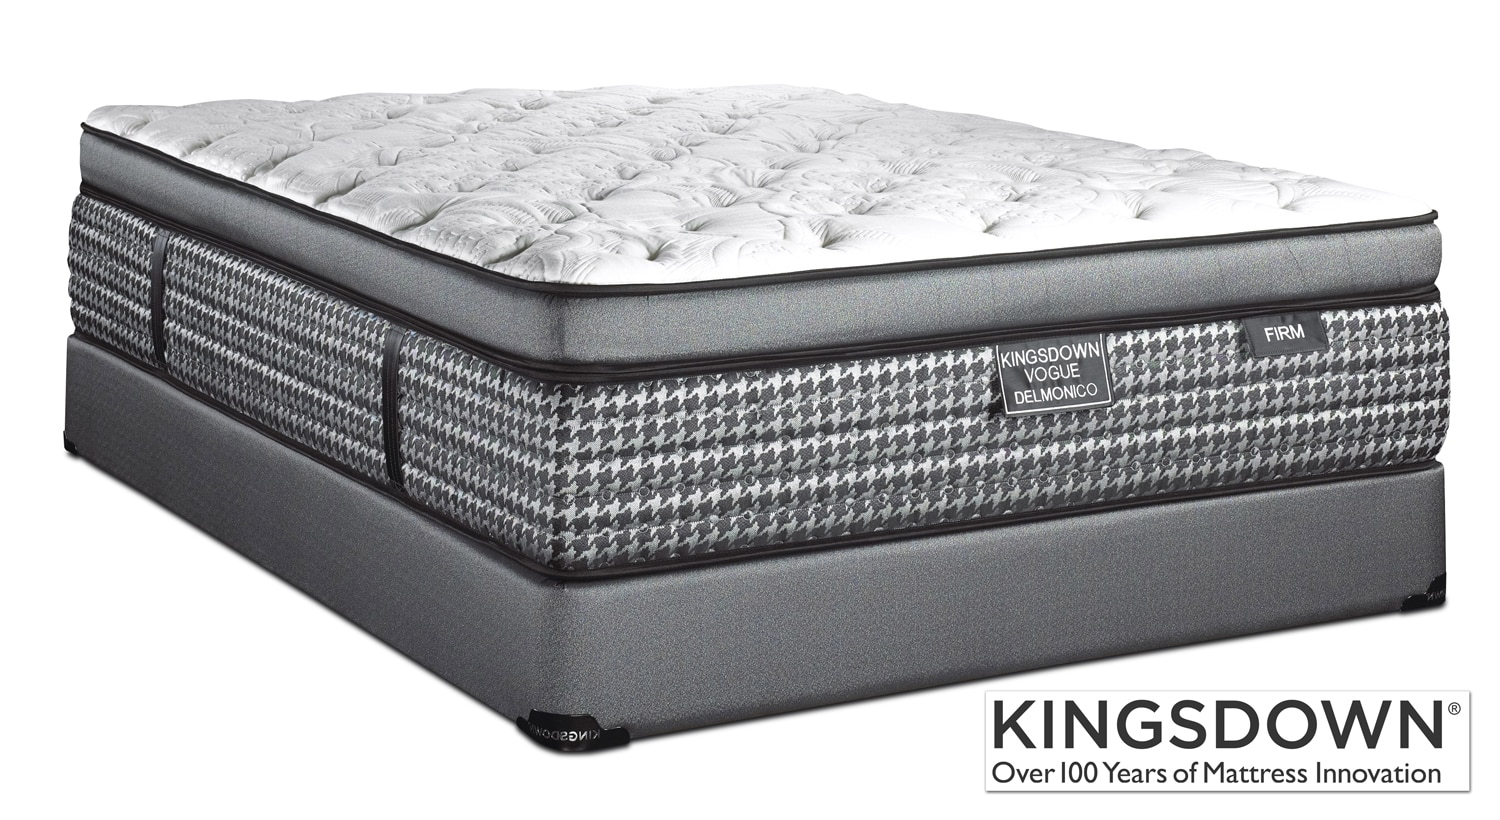 Mattresses and Bedding - Kingsdown Delmonico Firm Twin Mattress/Boxspring Set